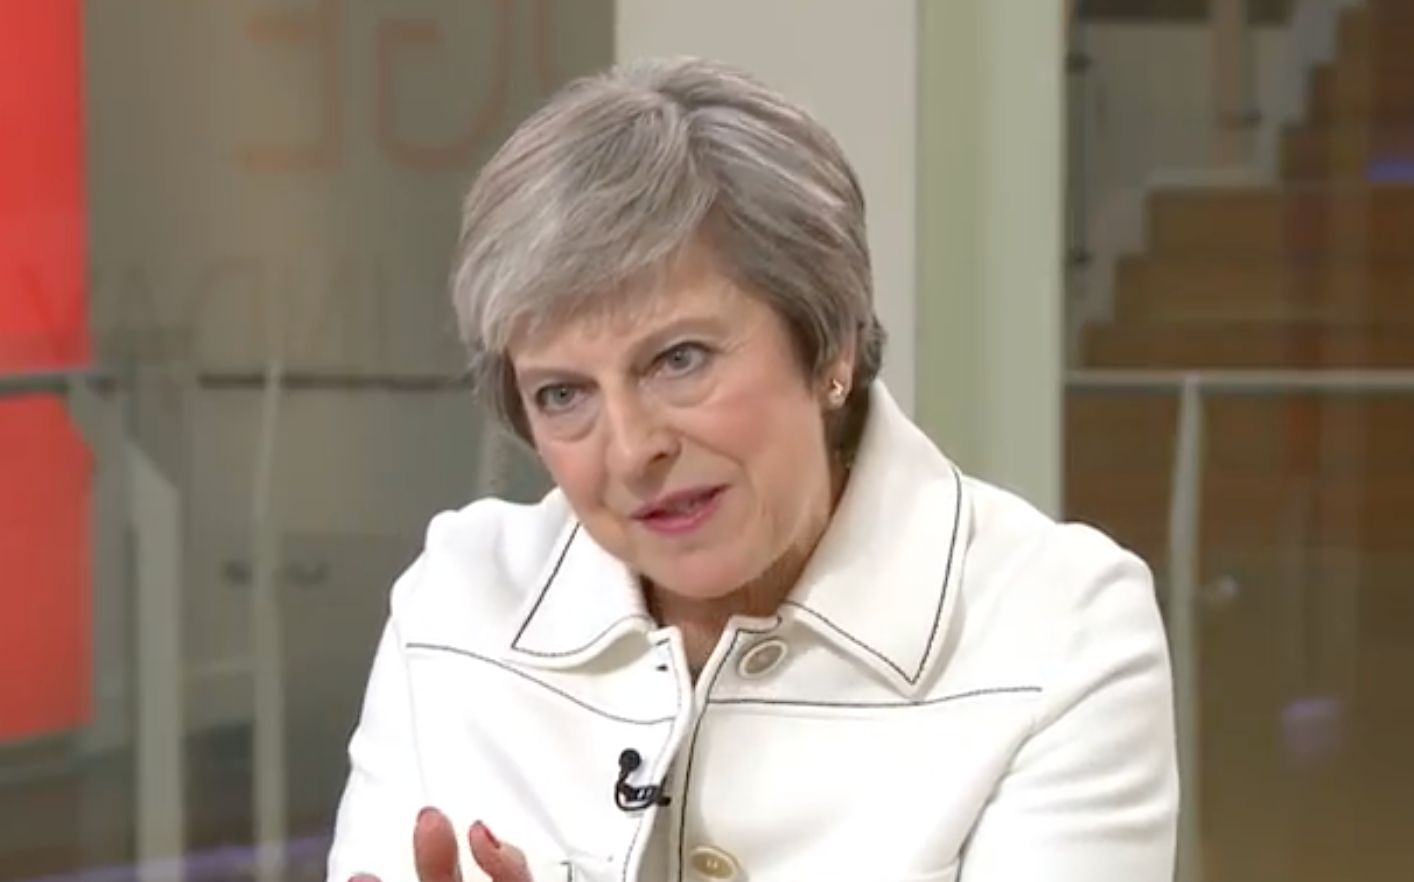 It has been a tough week for Prime Minister Theresa